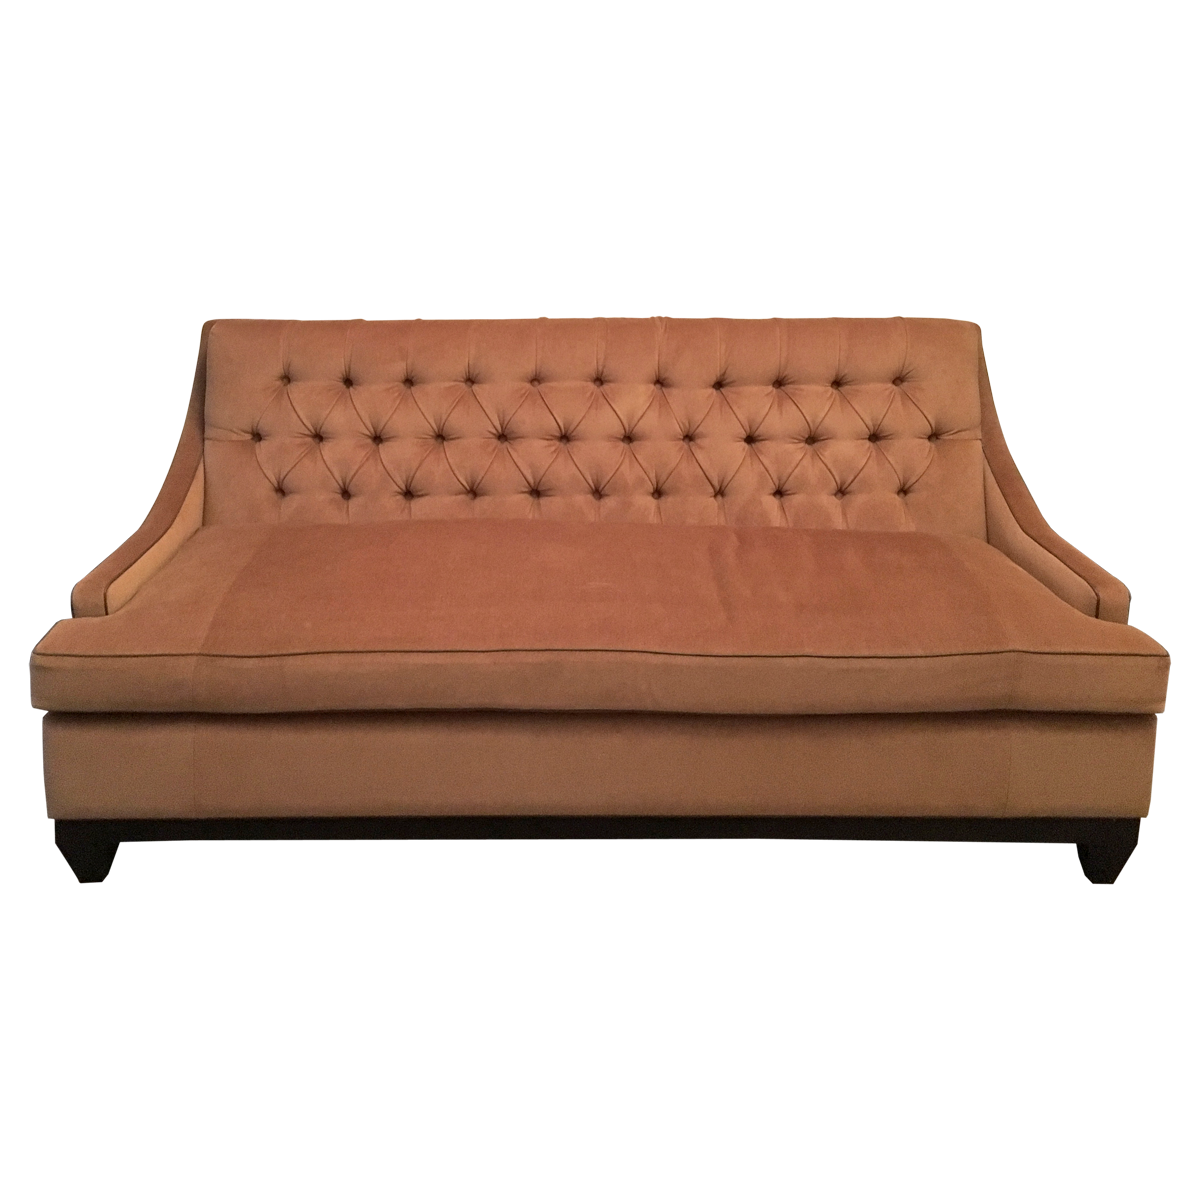 design ashley item hide bed size a queen products by daystar seafoam sleeper sofa signature number contemporary